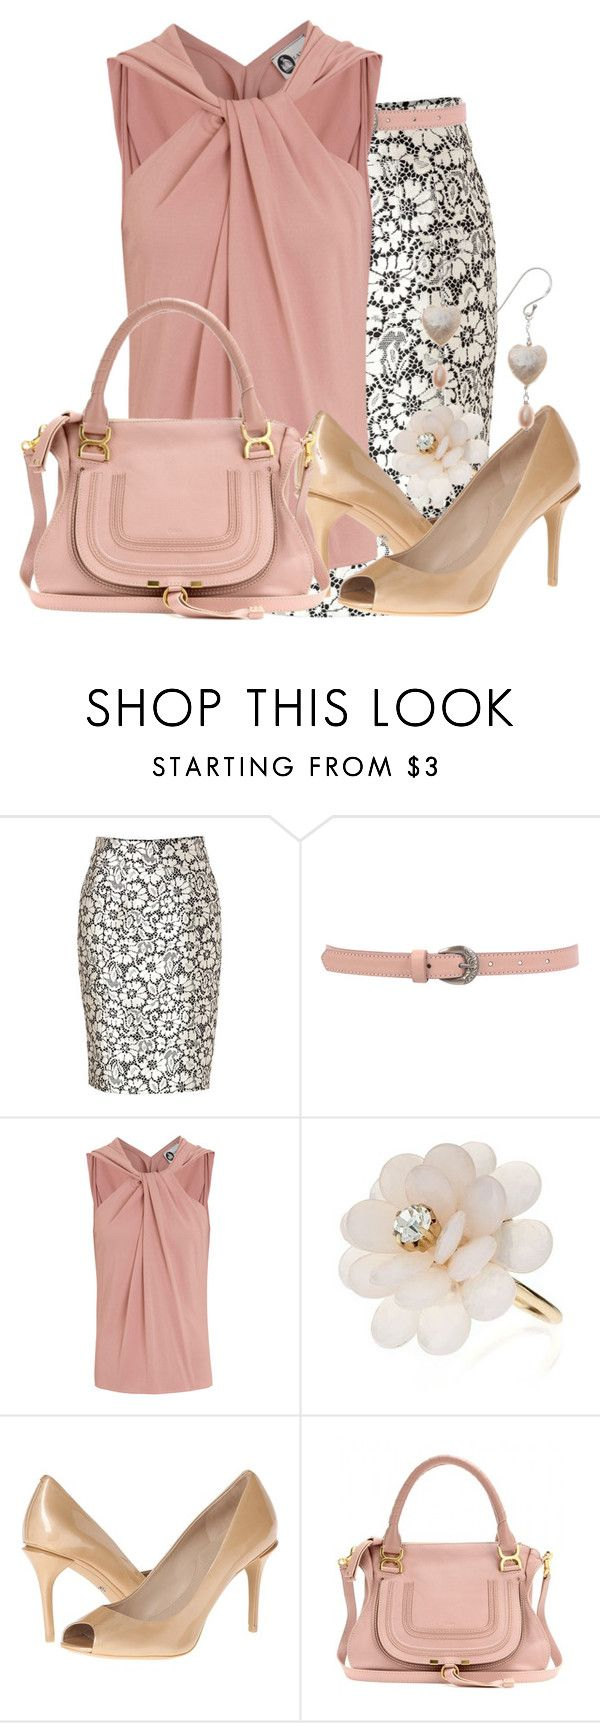 """Untitled #790"" by kimberphoto10 ❤ liked on Polyvore featuring Burberry, Forever 21, Lanvin, Kenneth Cole and Chloé"